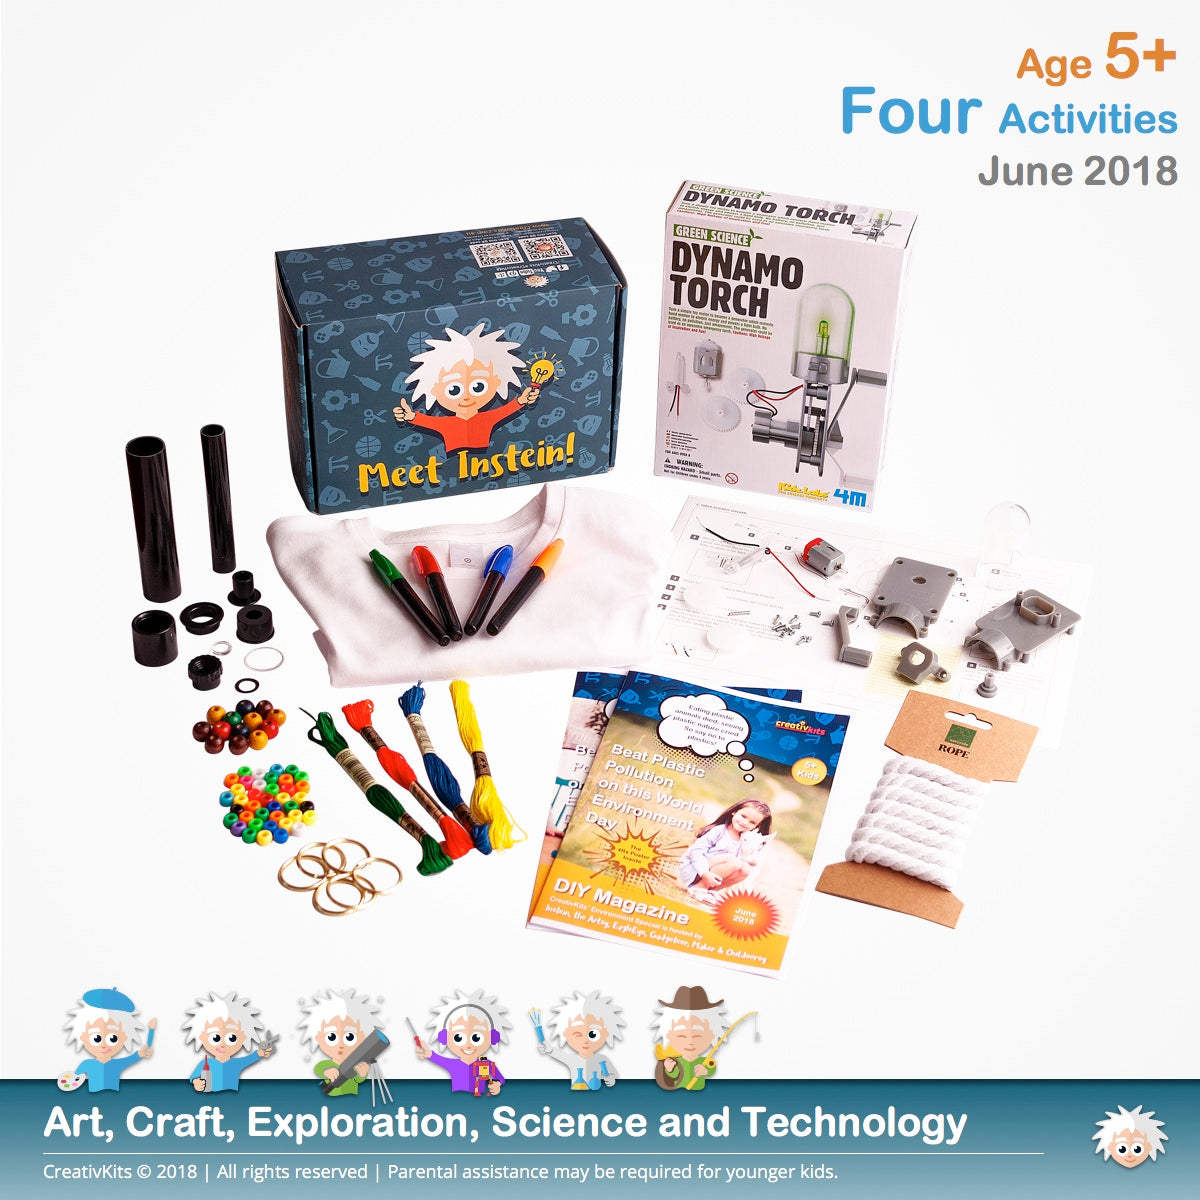 Dynamo Torch, T-Shirt Transfer, Assemble Telescope & Rope Tassel Keychains | June Plus Kit | Age 5+